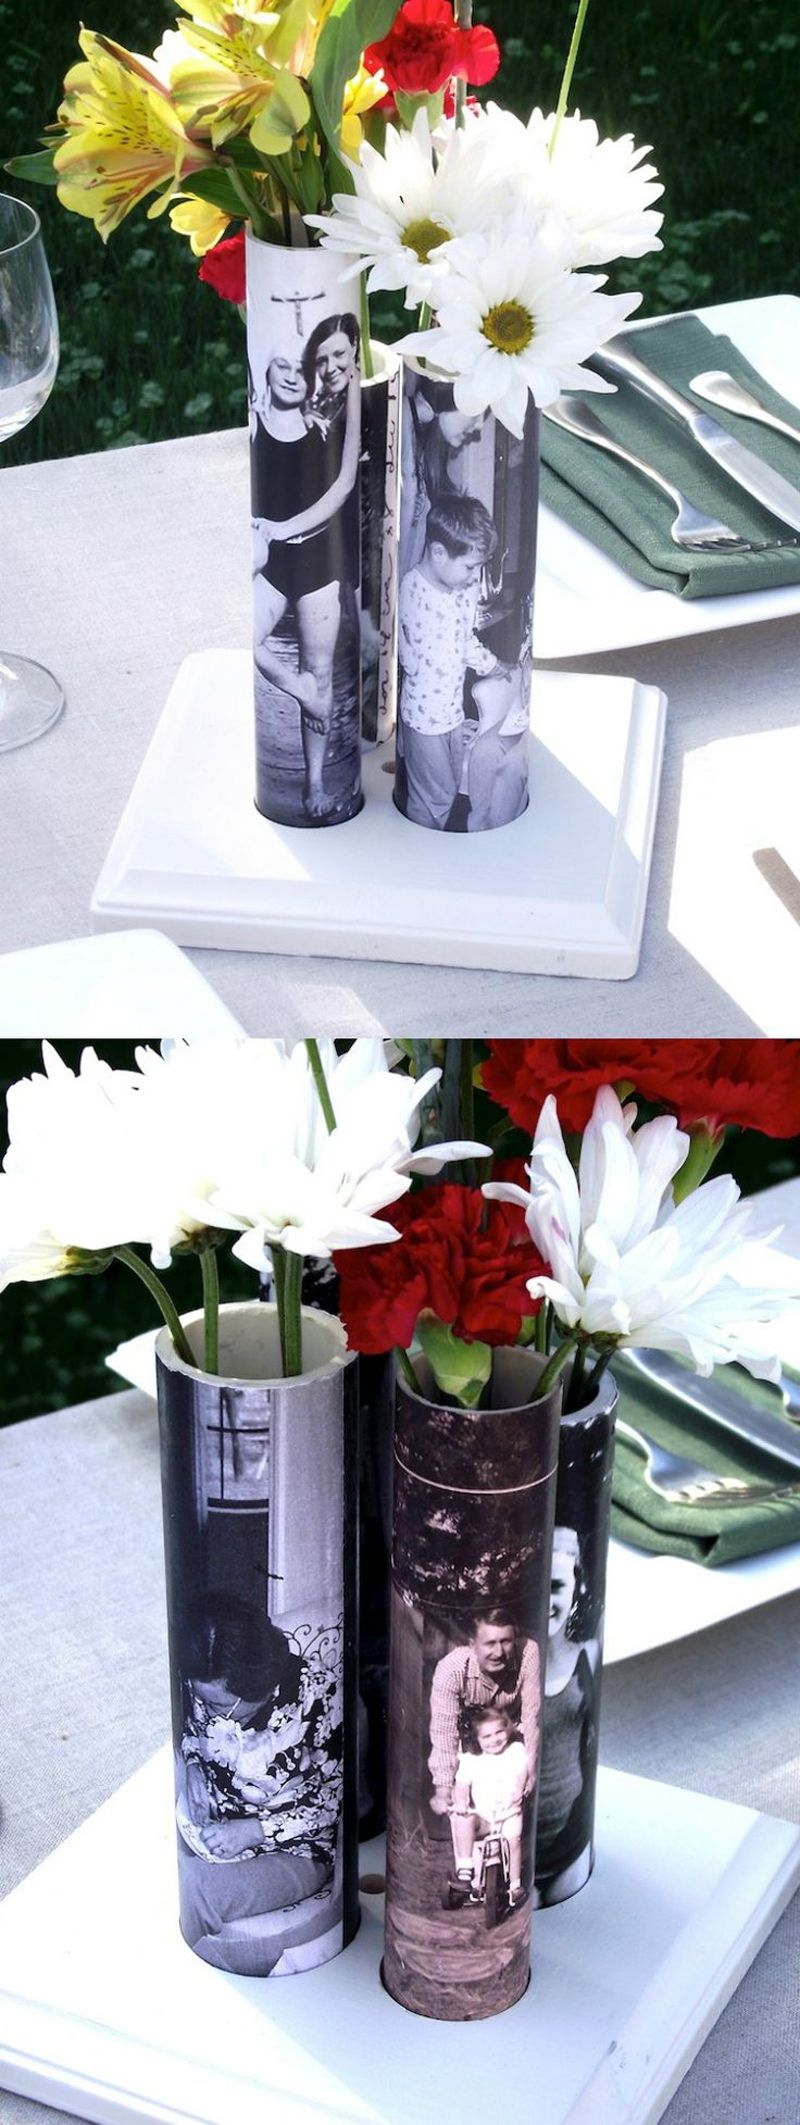 20 Best Pringles Can Crafts That Will Instantly Upgrade Your Home Decor